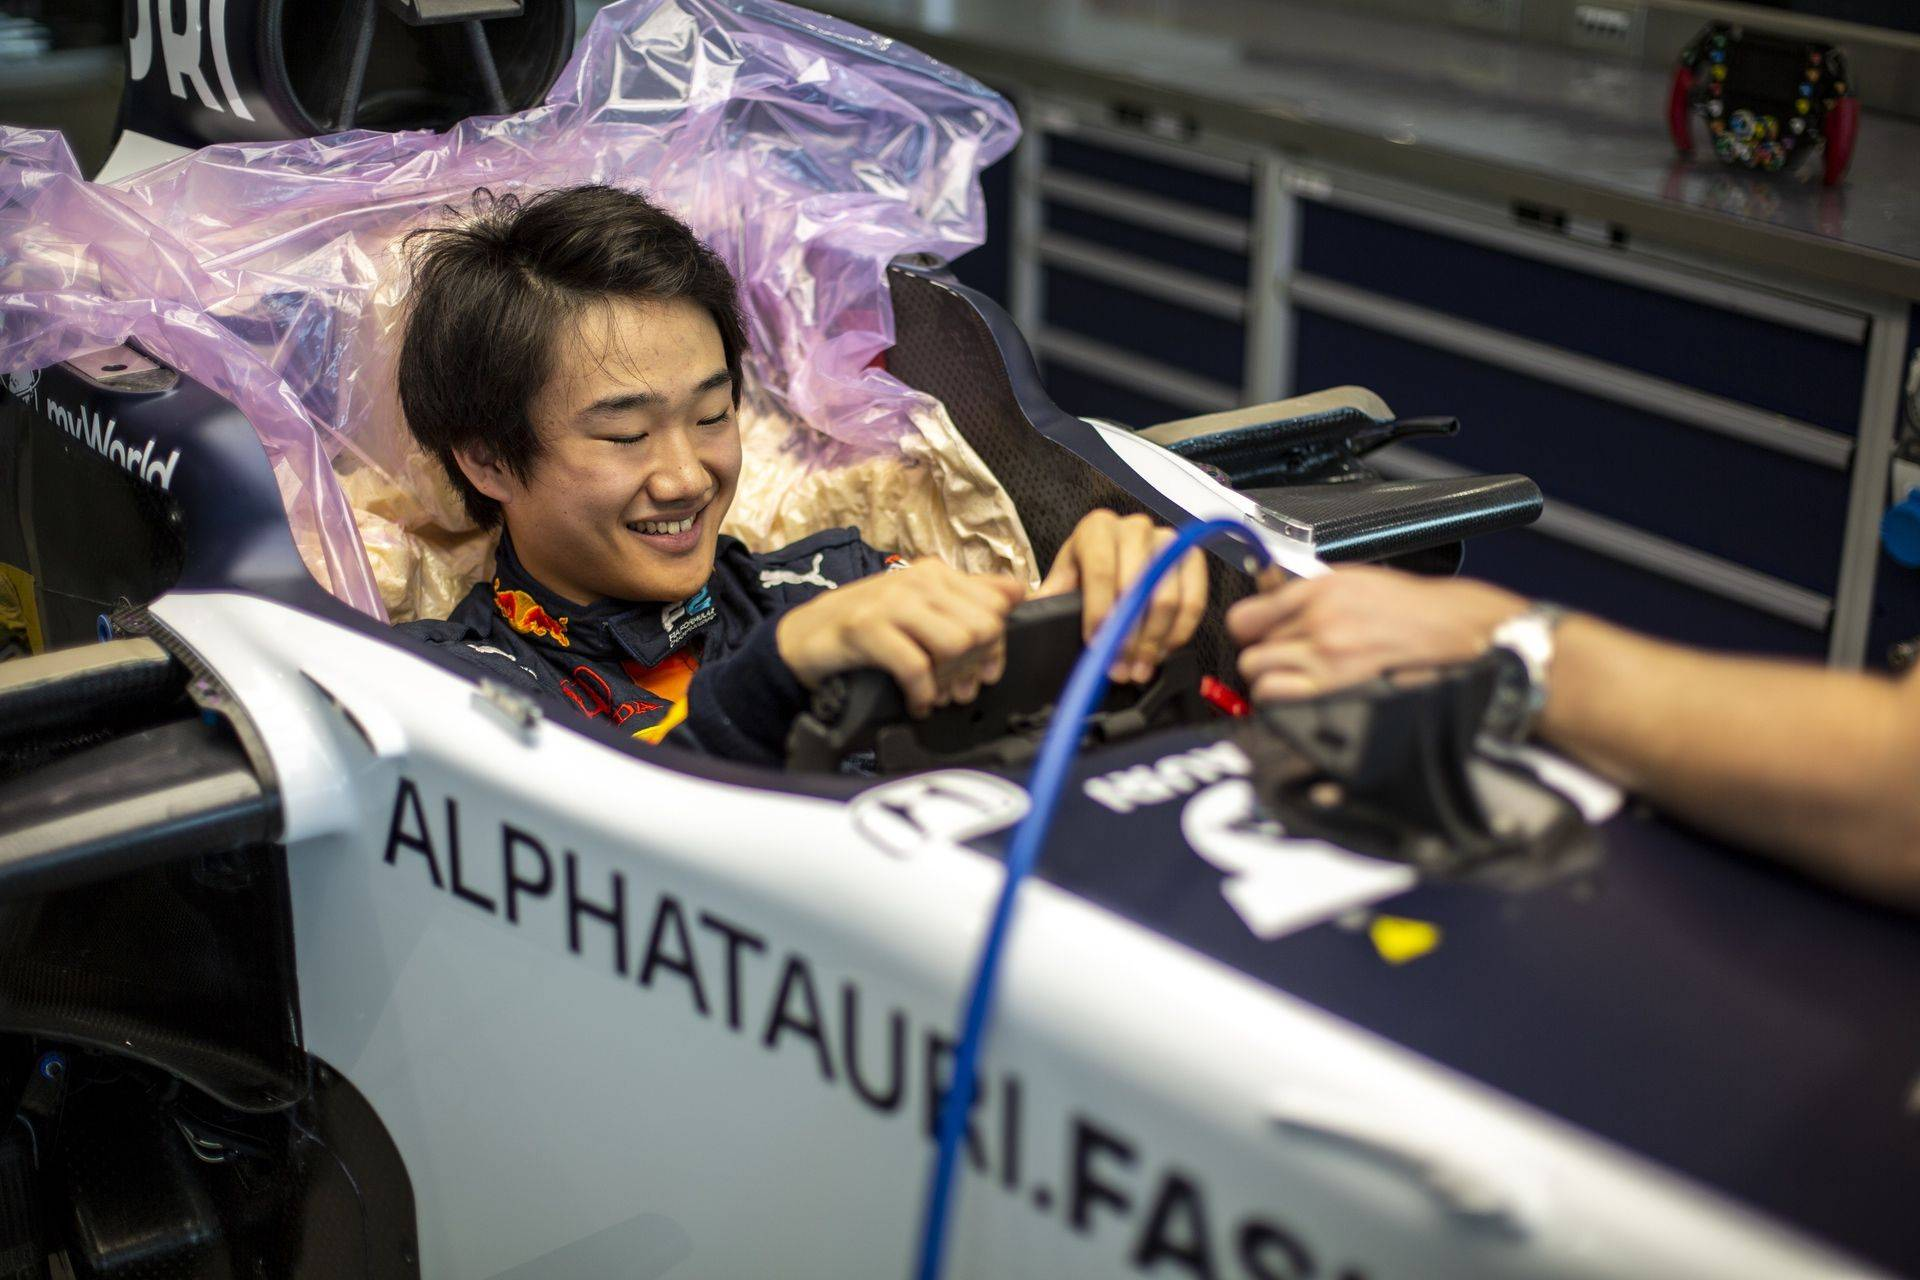 FAENZA, ITALY - OCTOBER 14: Yuki Tsunoda of Japan completes his seat fit at the Scuderia AlphaTauri factory on October 14, 2020 in Faenza, Italy. (Photo by Josh Kruse/Scuderia AlphaTauri) // Josh Kruse / Scuderia AlphaTauri / Red Bull Content Pool // SI202010140221 // Usage for editorial use only //